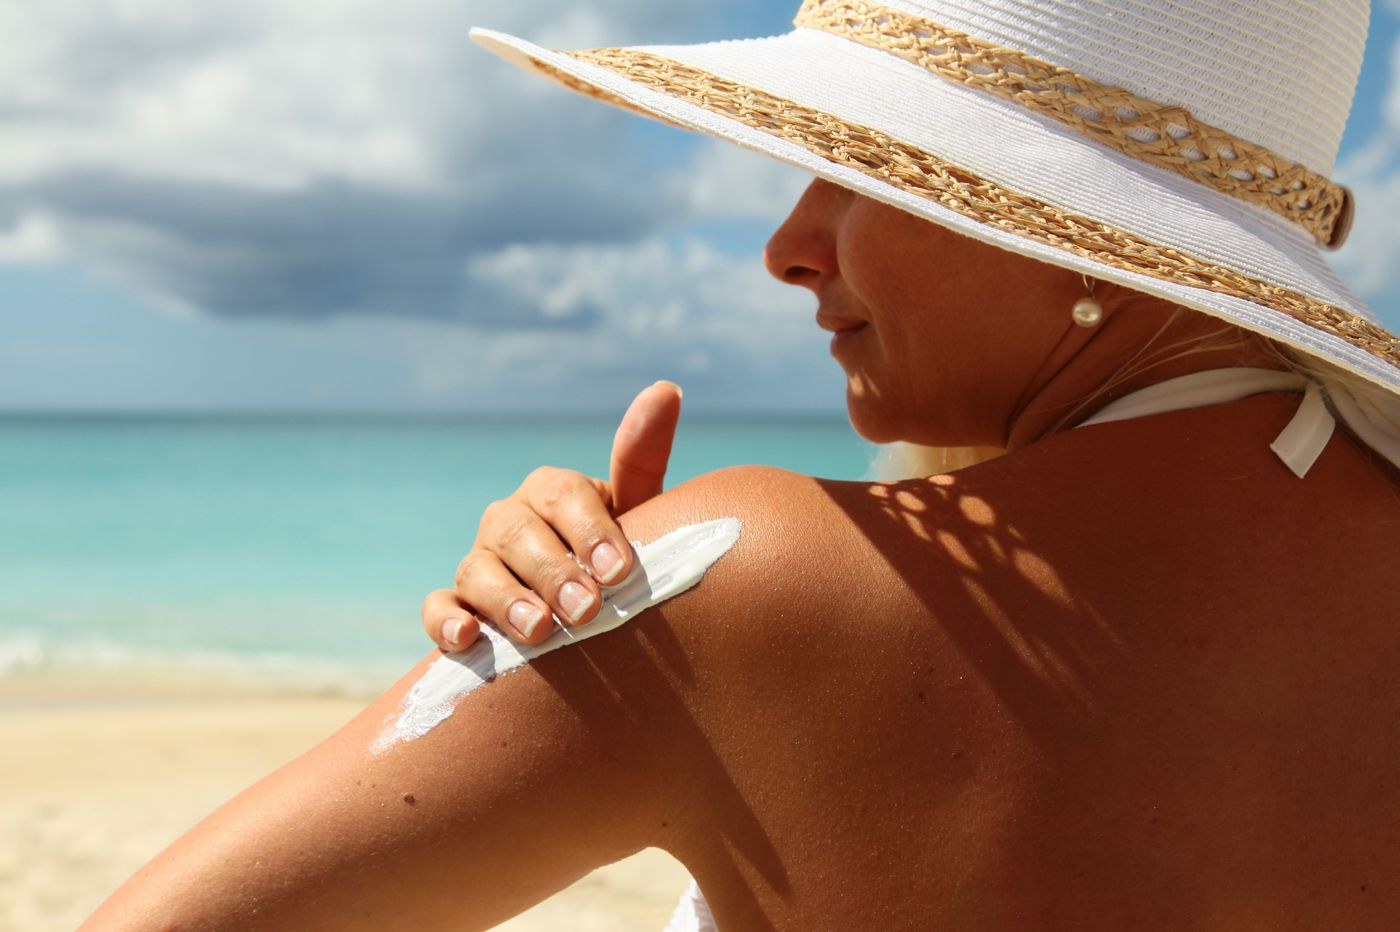 Homemade, natural sunscreens might get you burned